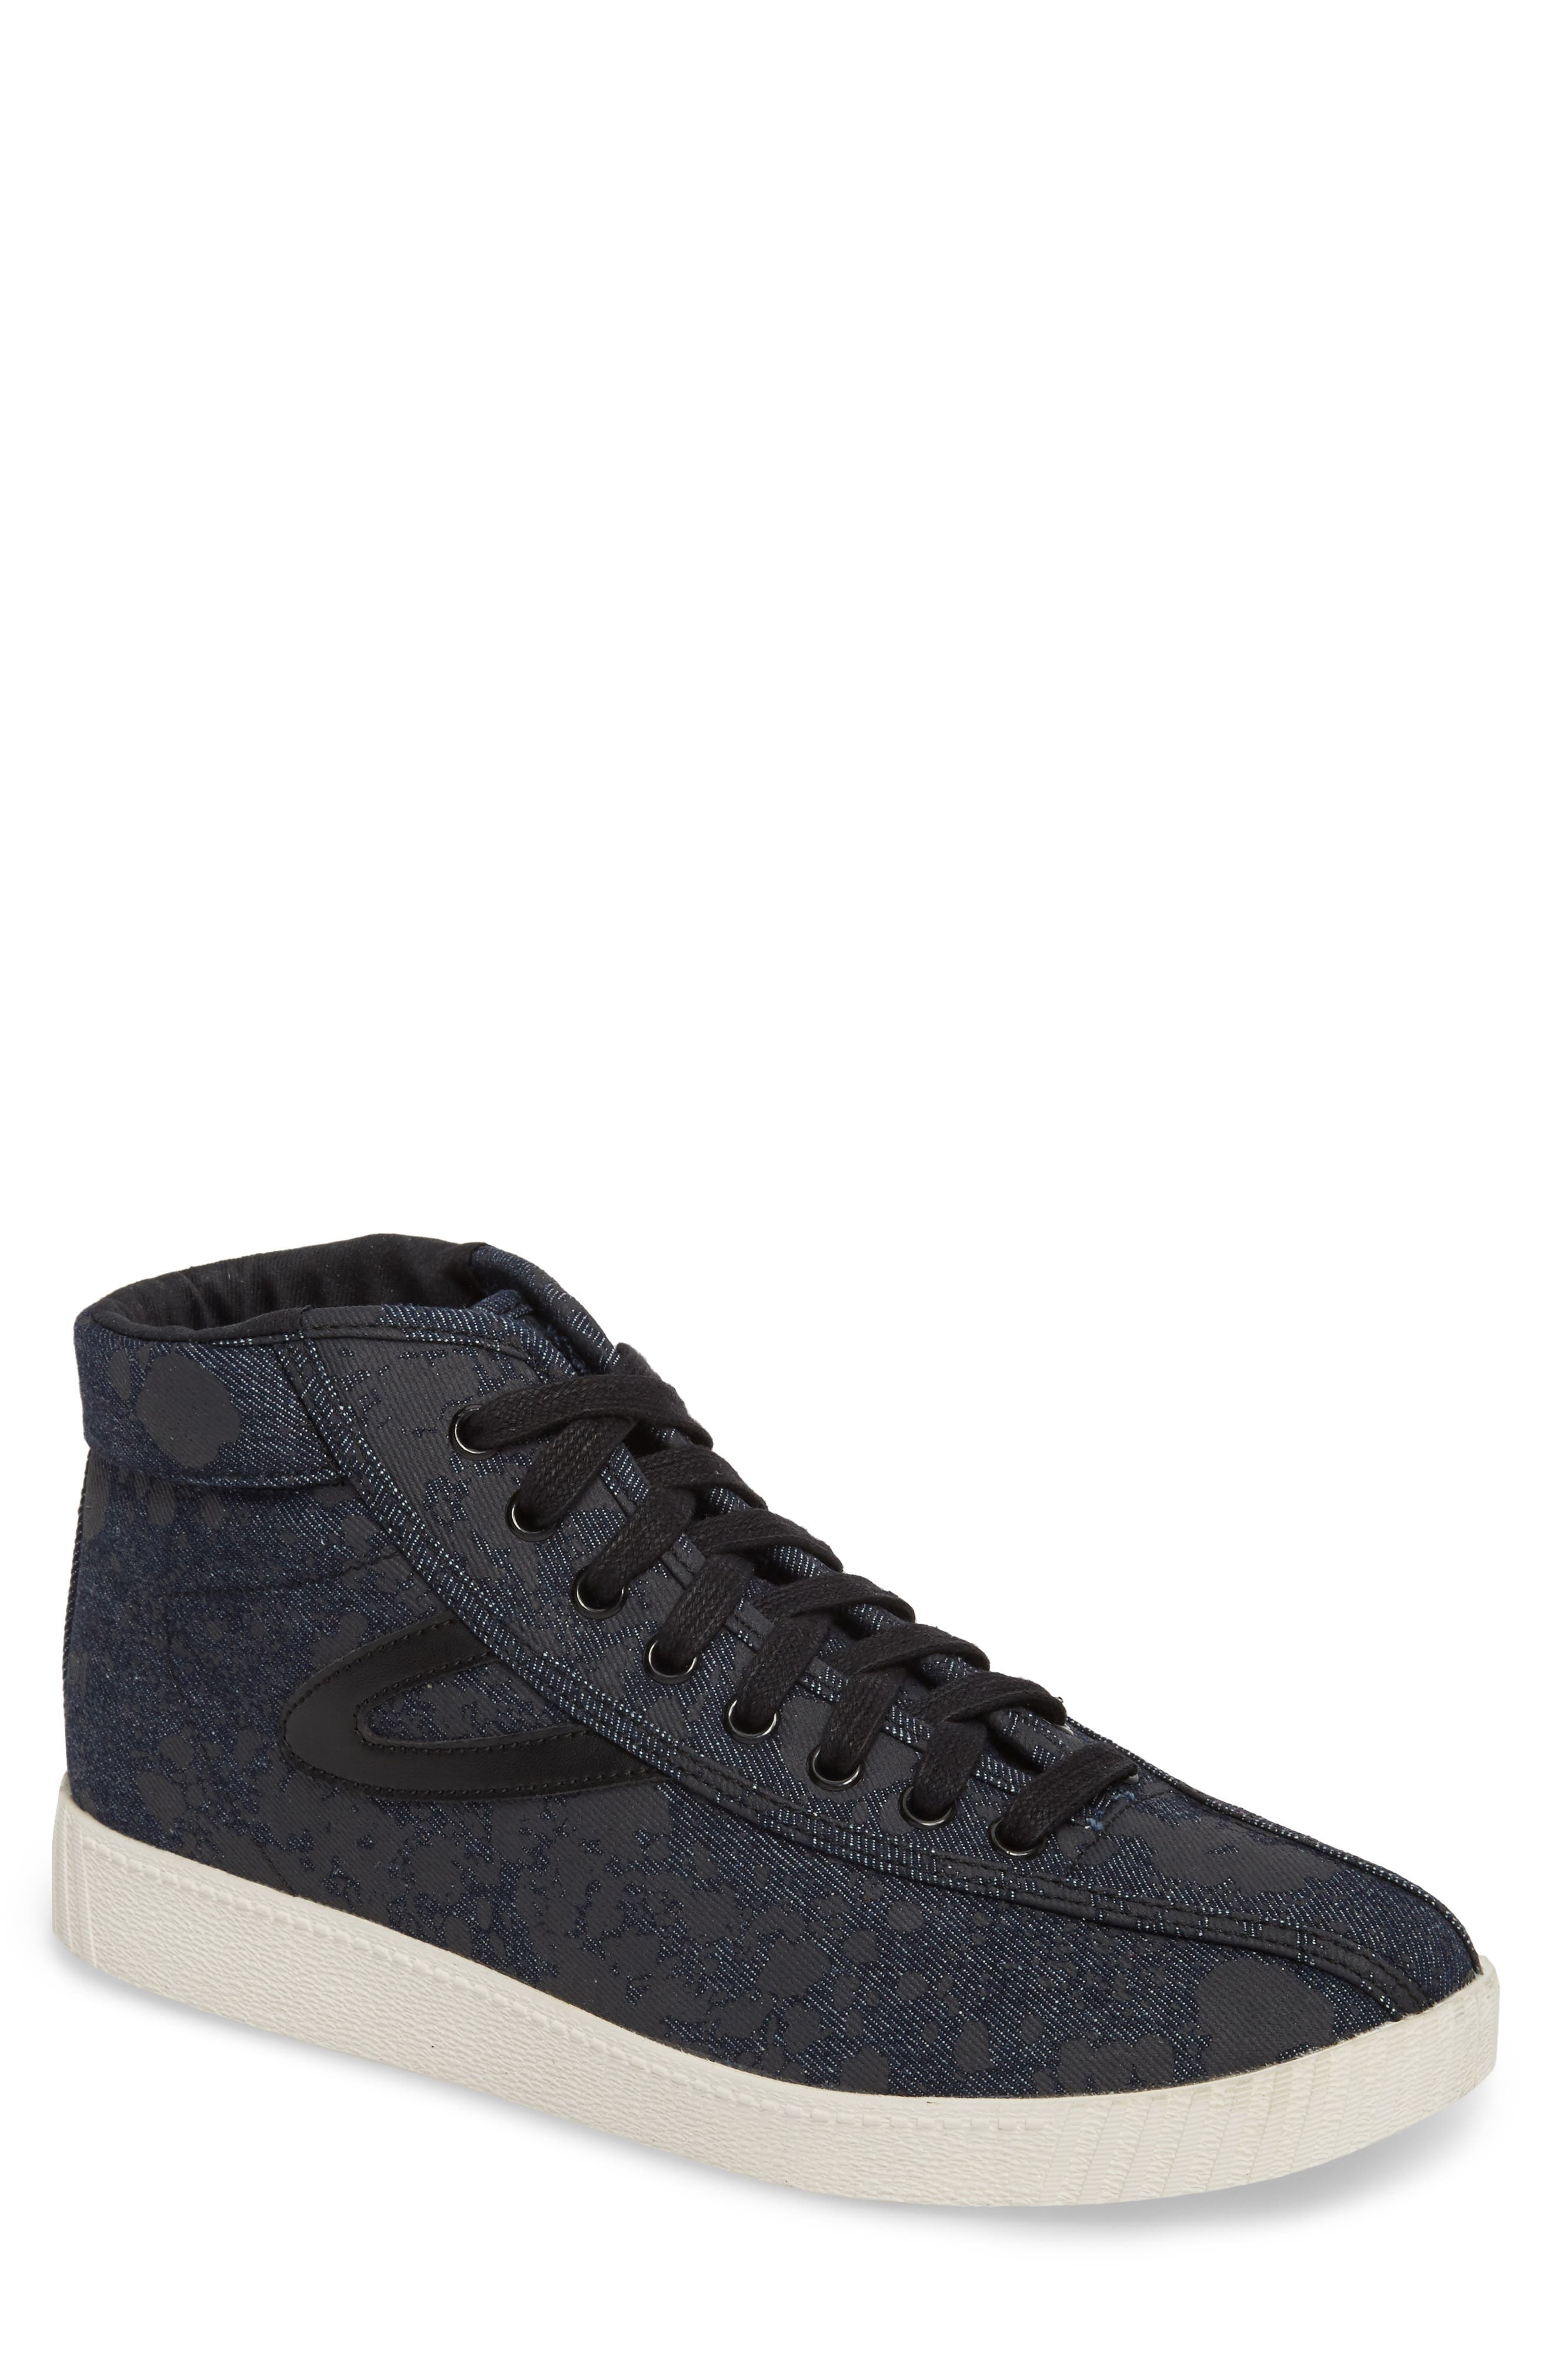 Nylite High Top Sneaker,                         Main,                         color, 001